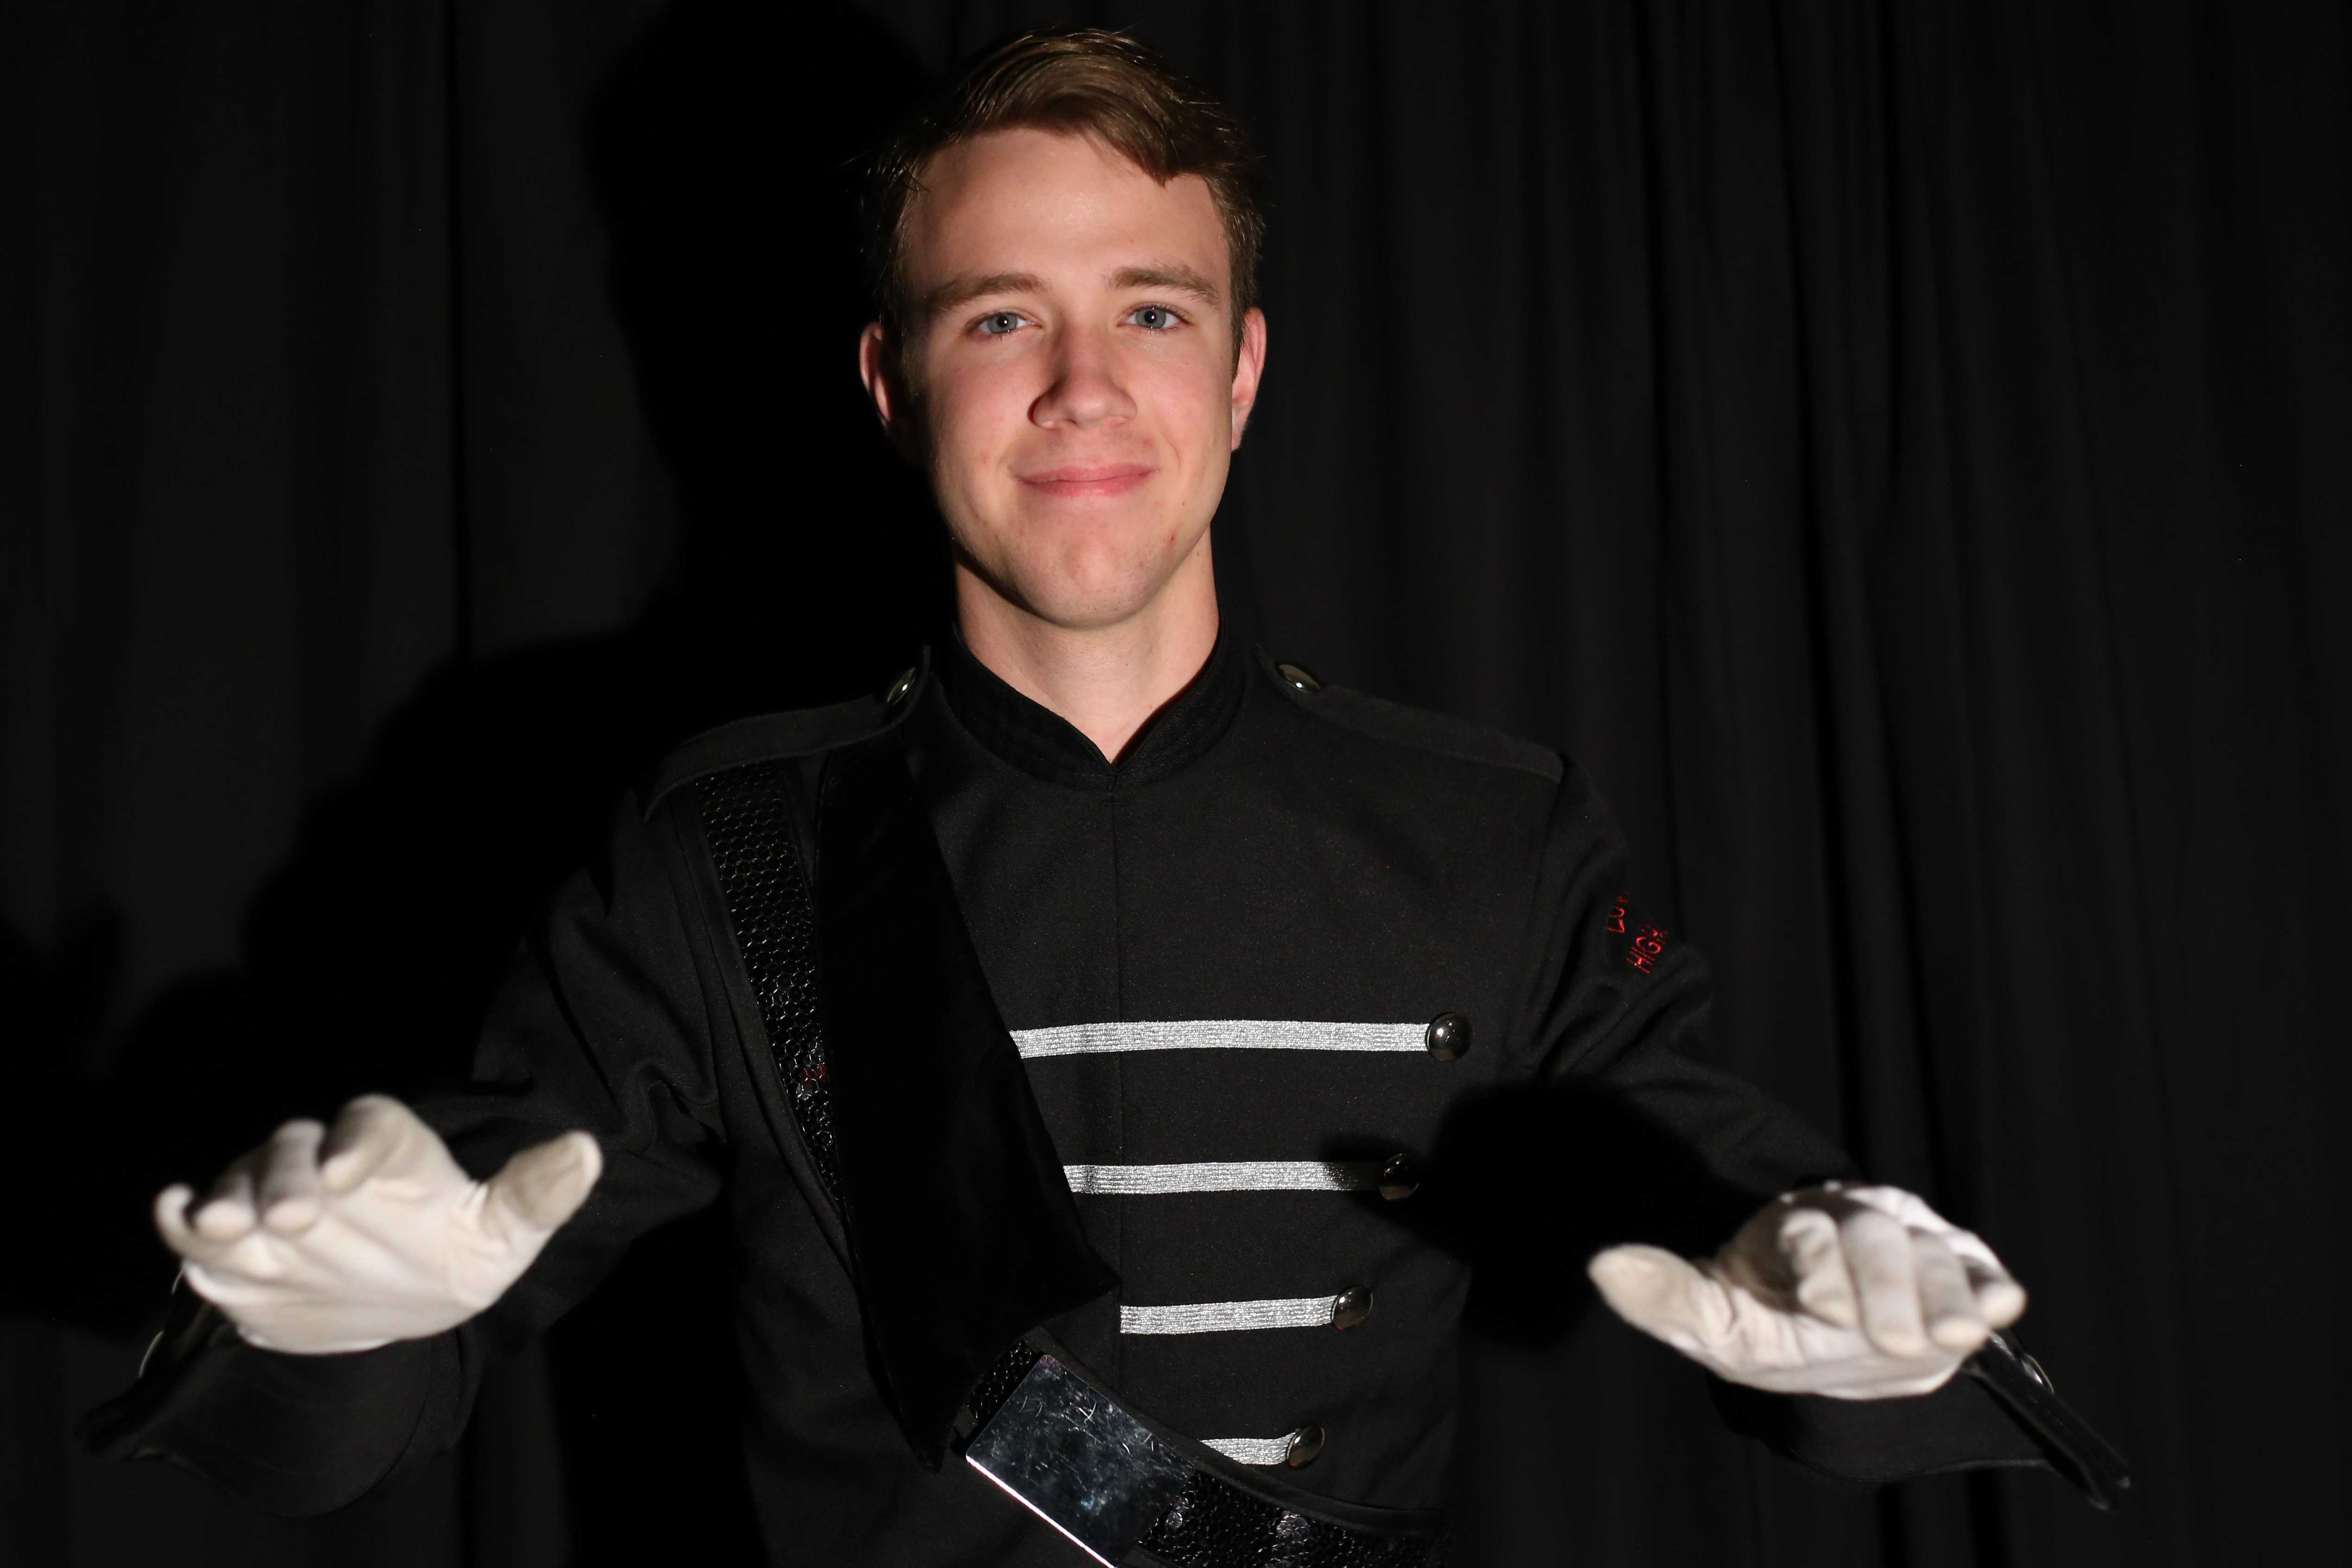 Braden Smotherman was one of the drum majors during the band's recent marching show,